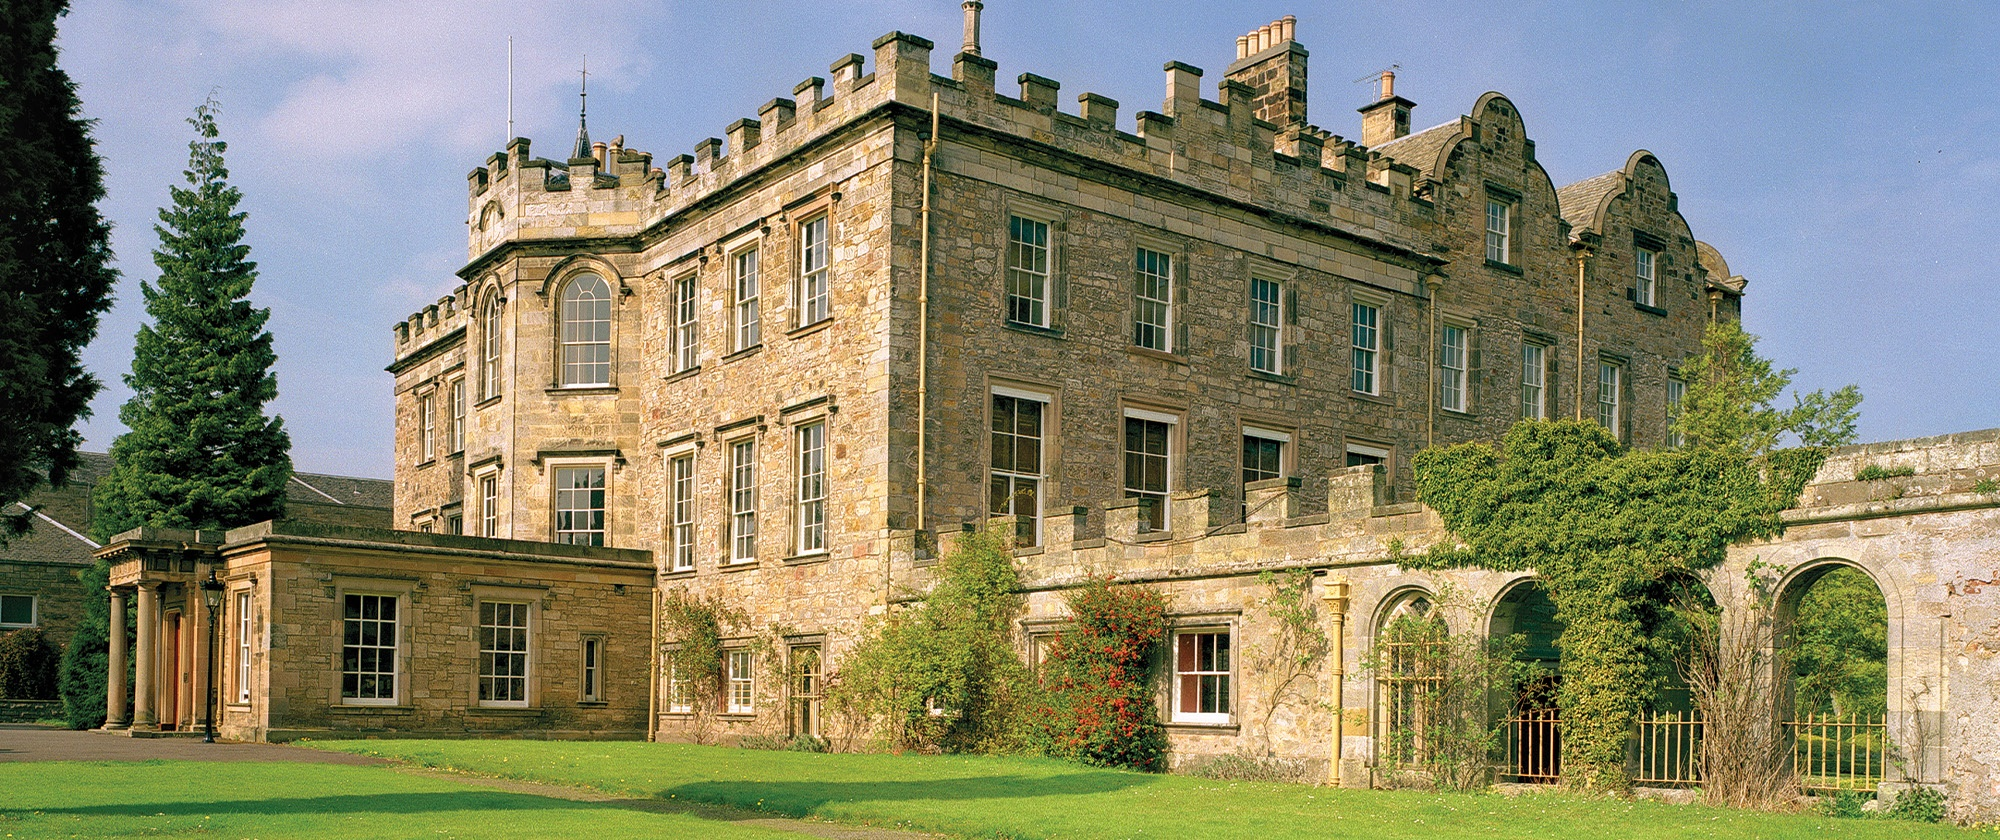 Property from Newbattle Abbey, Midlothian